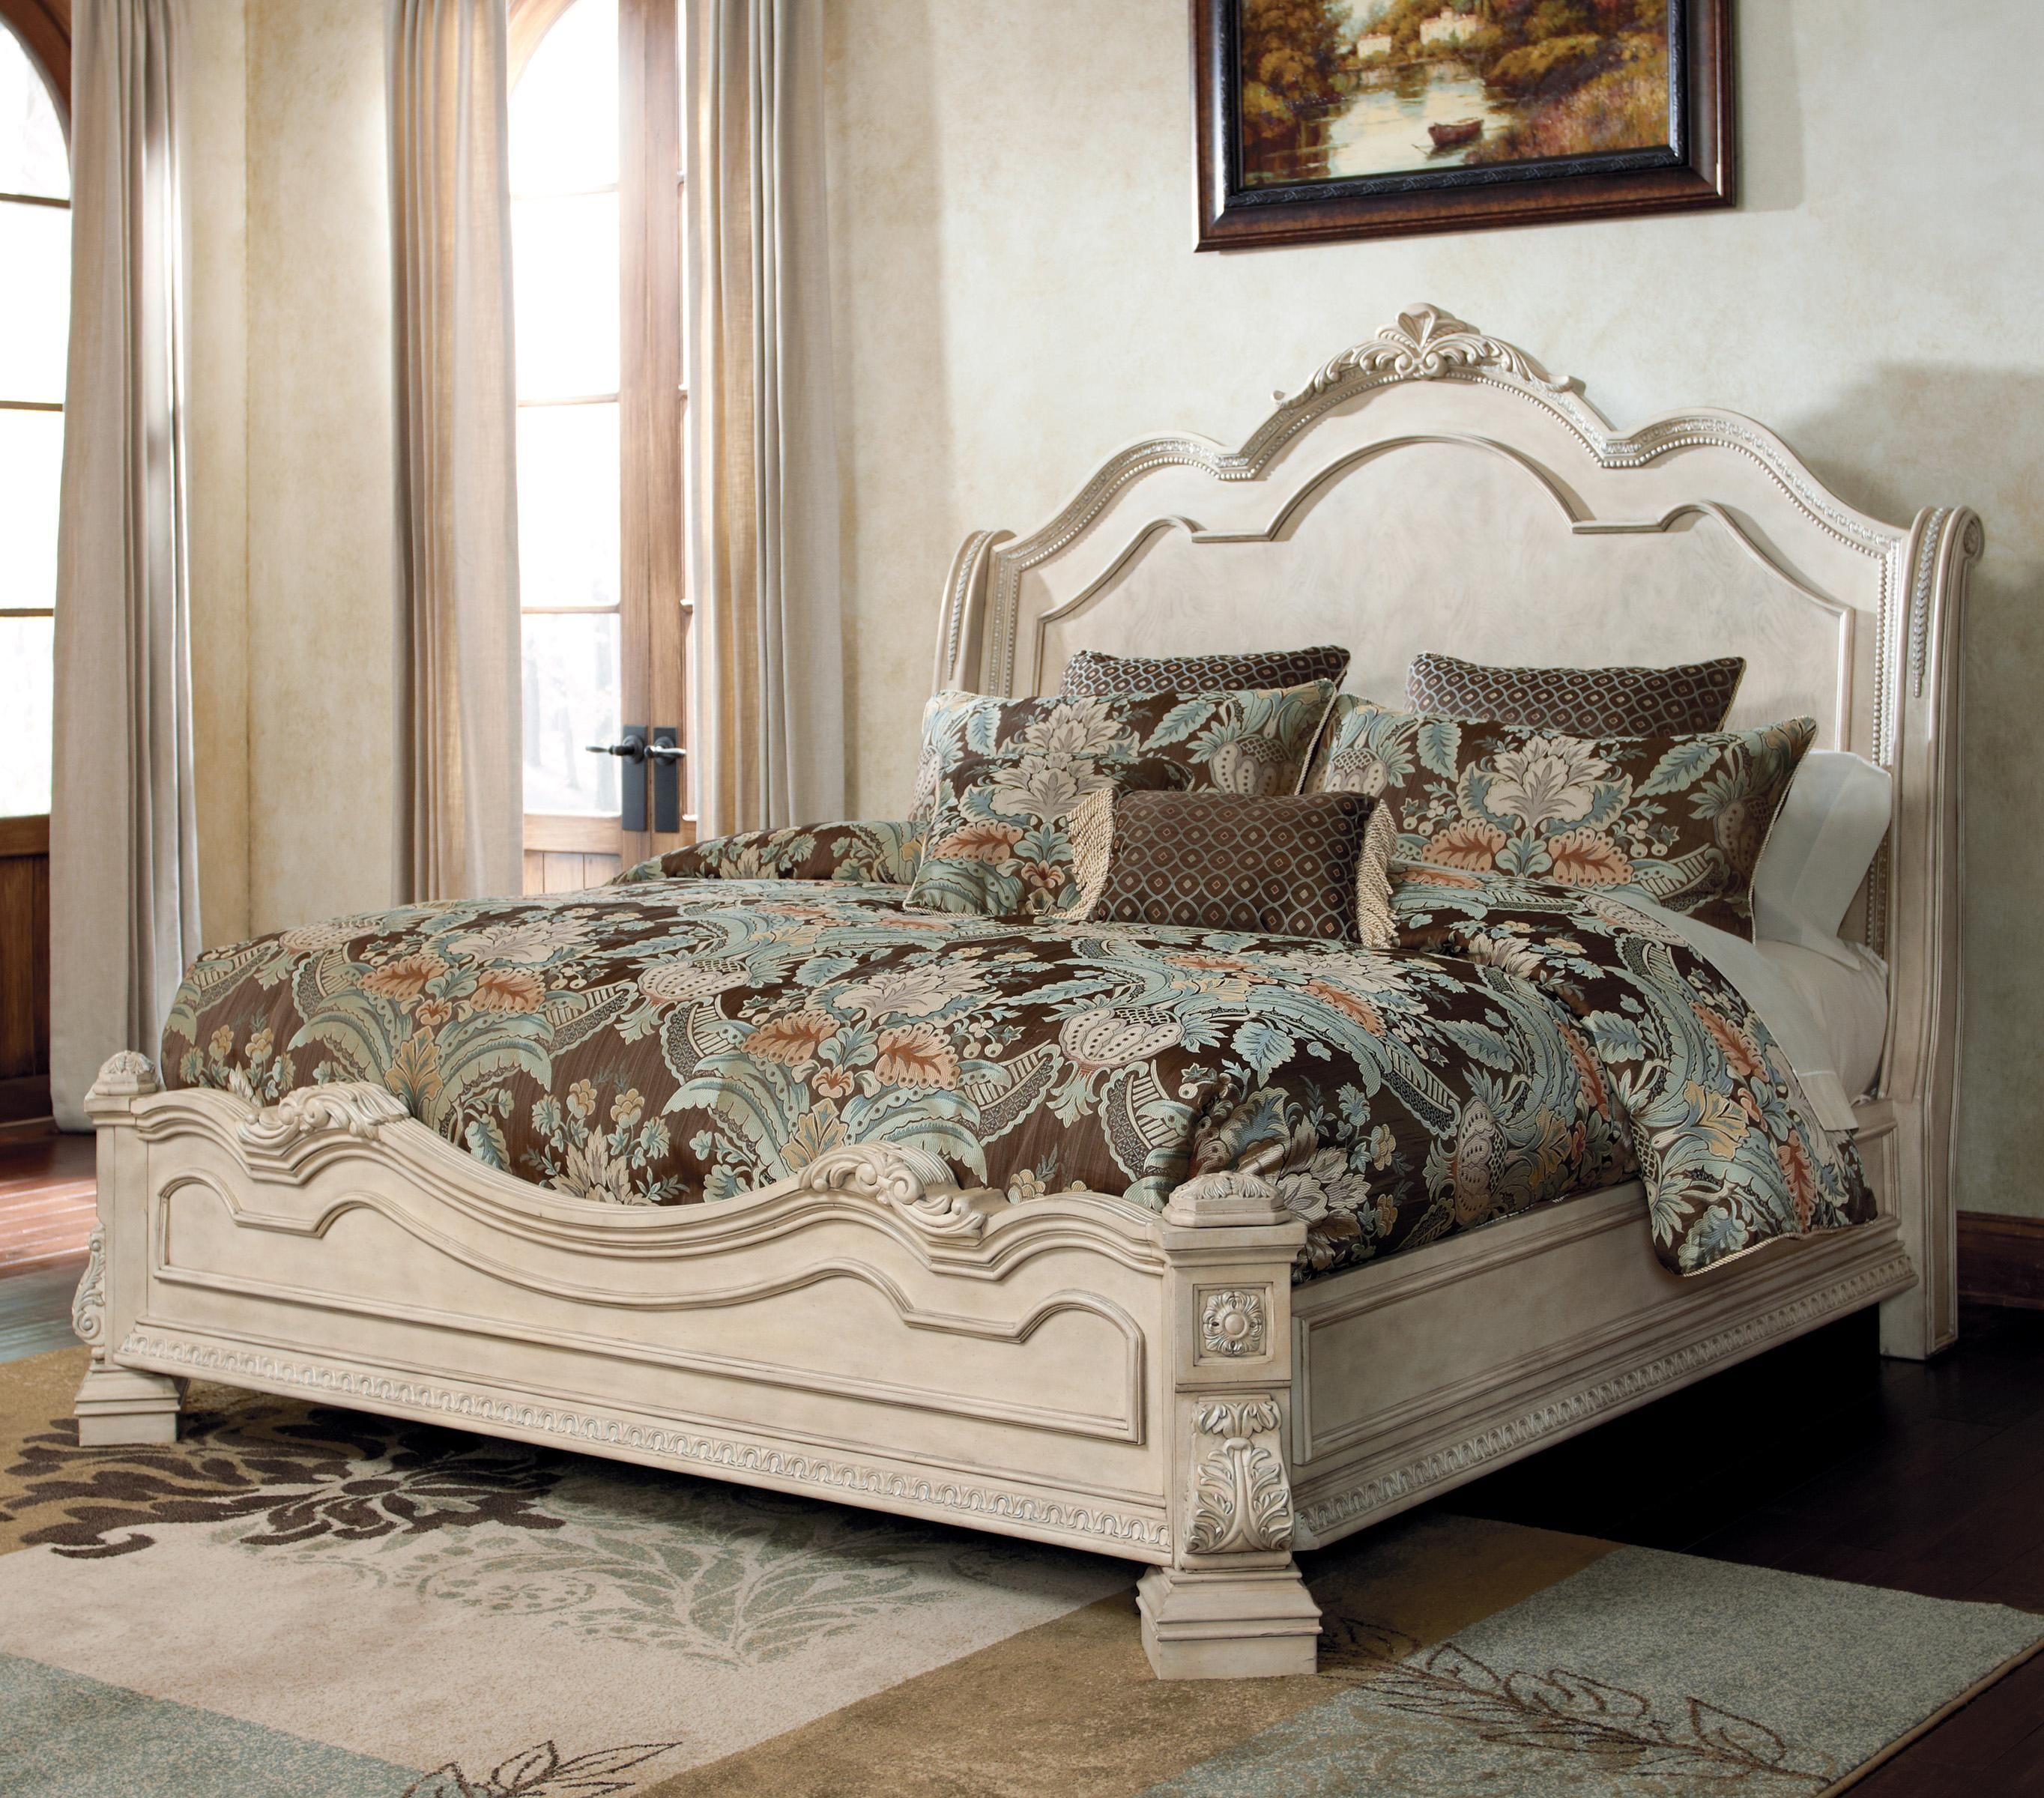 The Ortanique Traditional Queen Bed With Sleigh Headboard By Ashley Millennium Is Available I